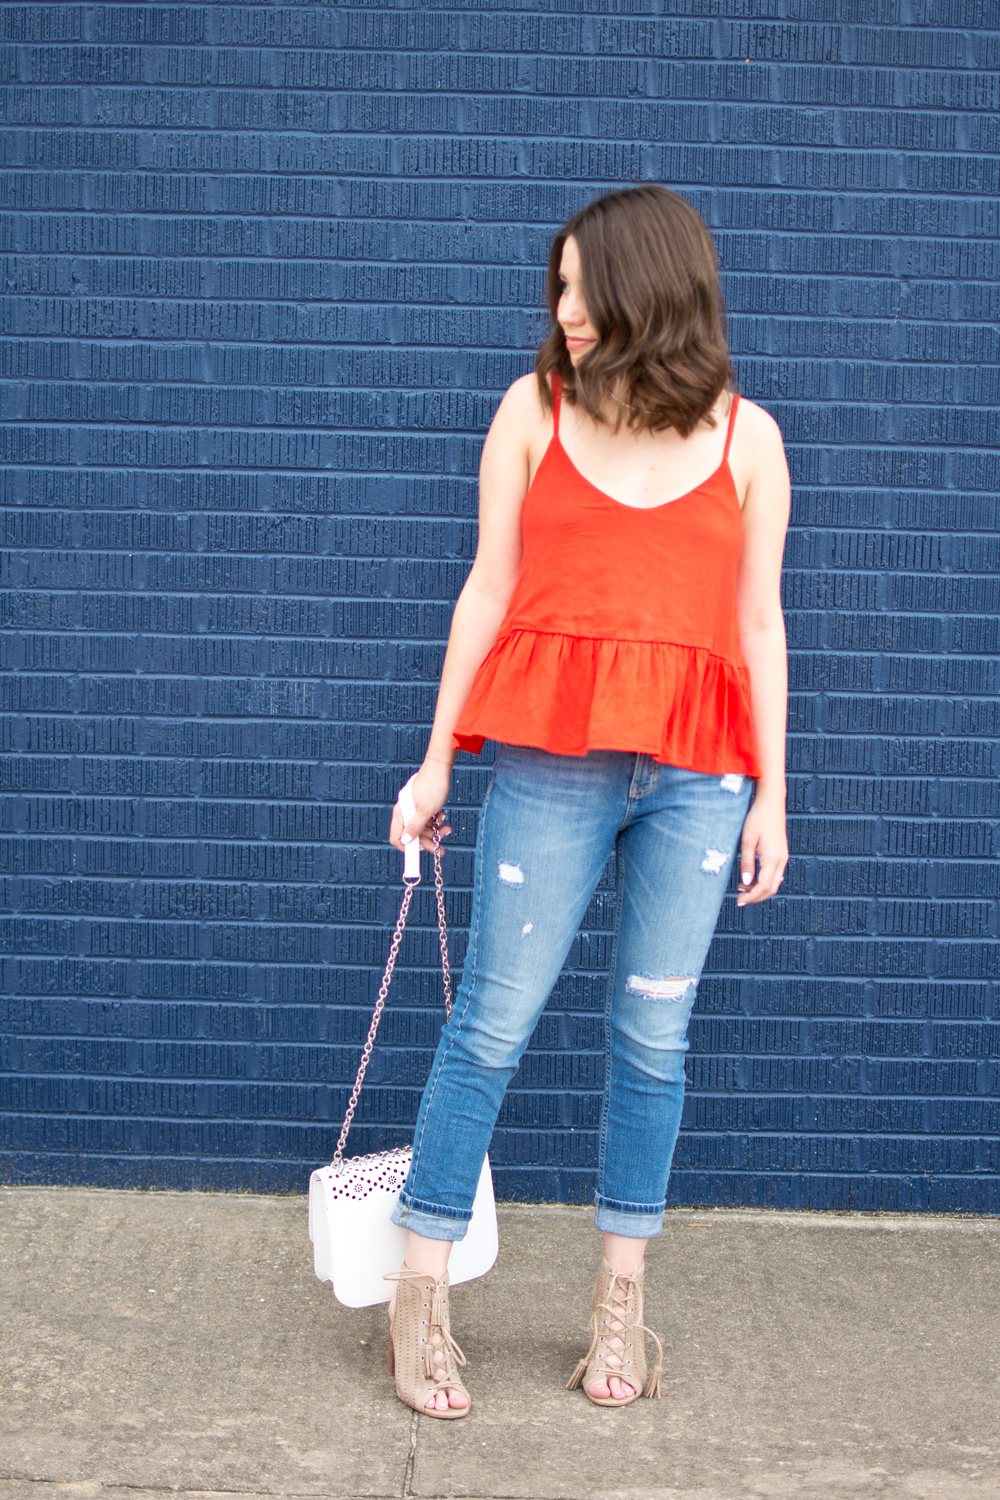 summer outfit, memorial day outfit, 4th of july outfit idea, ootd, blogger, dallas blogger, americana, fashion blogger outfit, summer outfit ideas